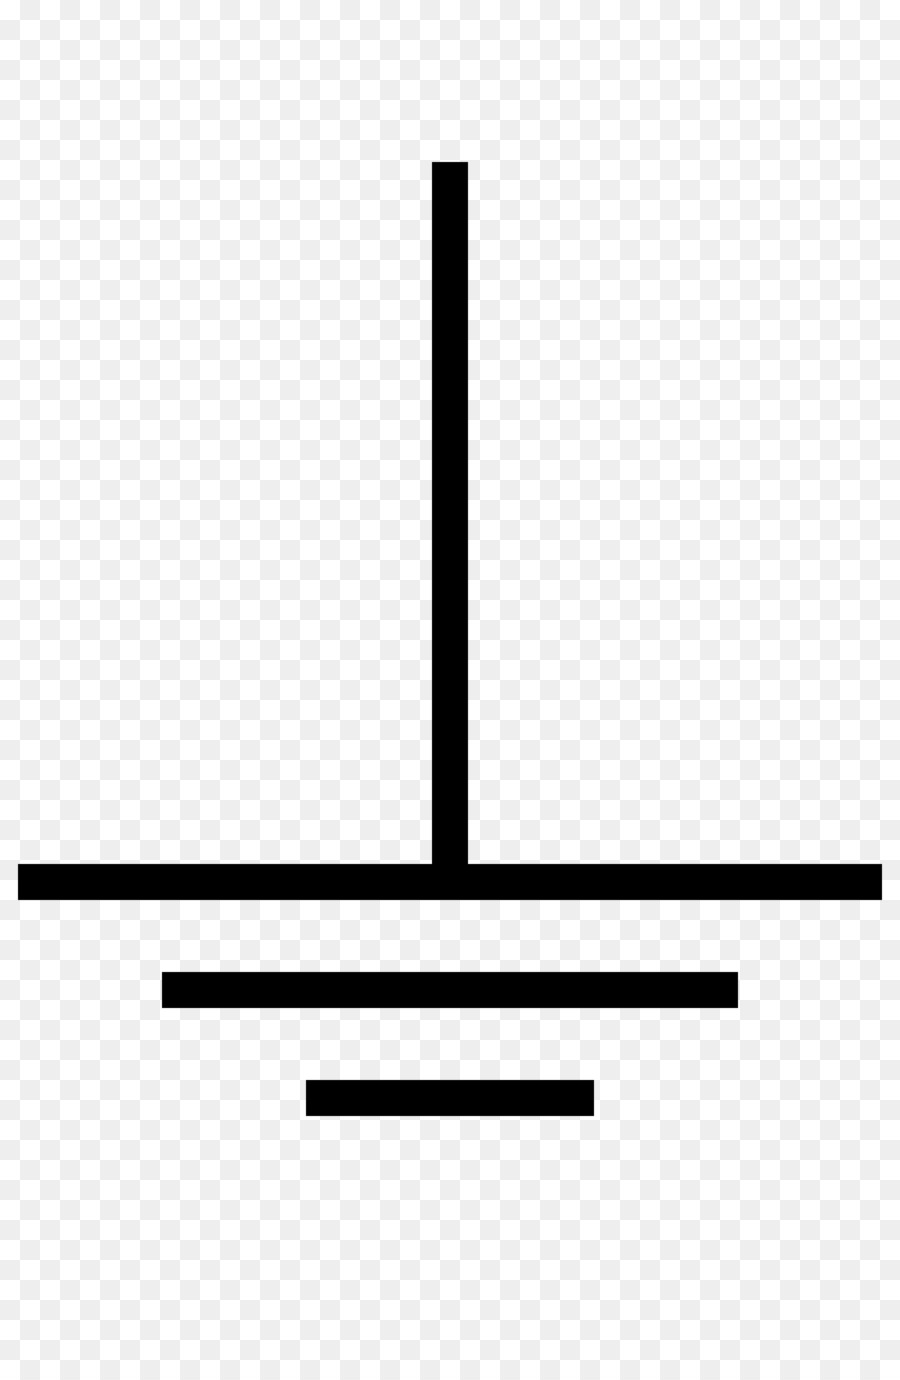 medium resolution of ground electronic symbol circuit diagram black line png